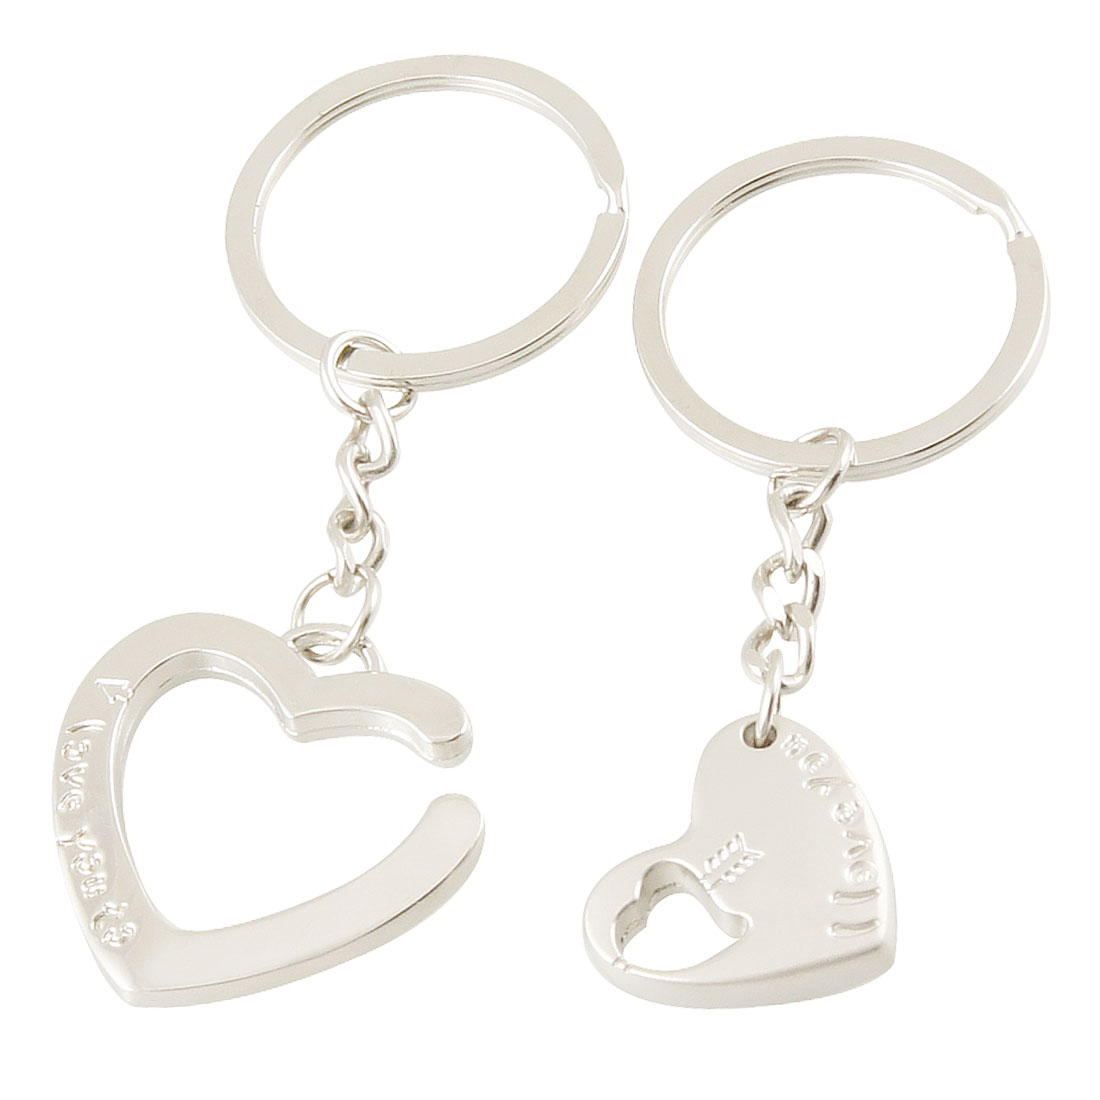 "Metal 1.1"" Dia Ring Silver Tone Love Hearts Pendant Lovers Keyrings Keychains 2 Pcs"